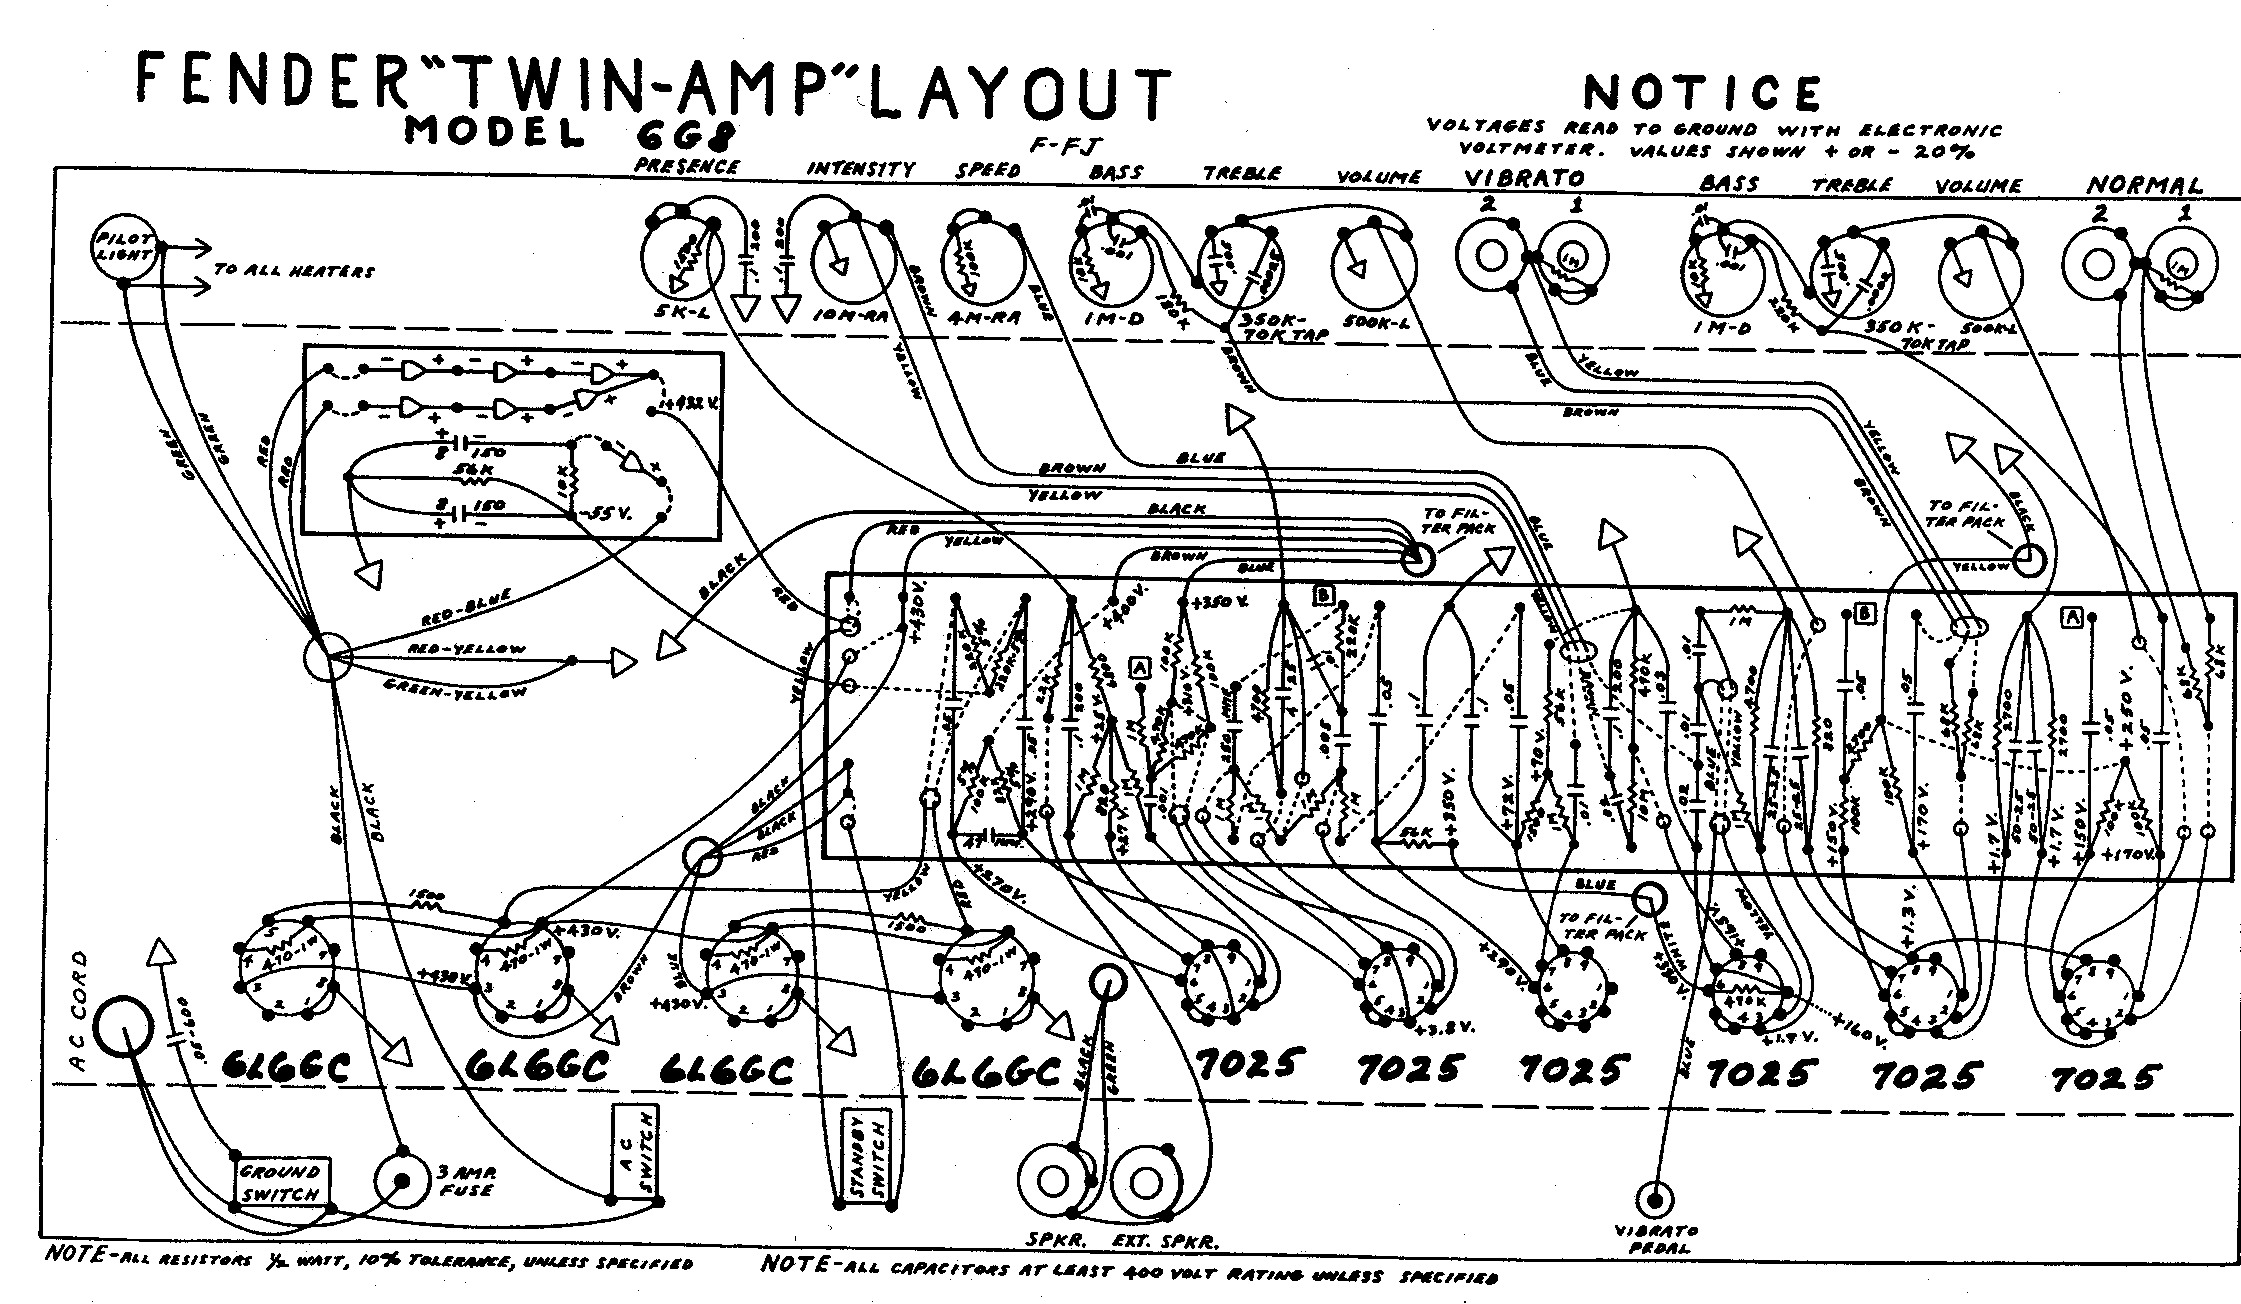 twin 6g8 layout.pdf